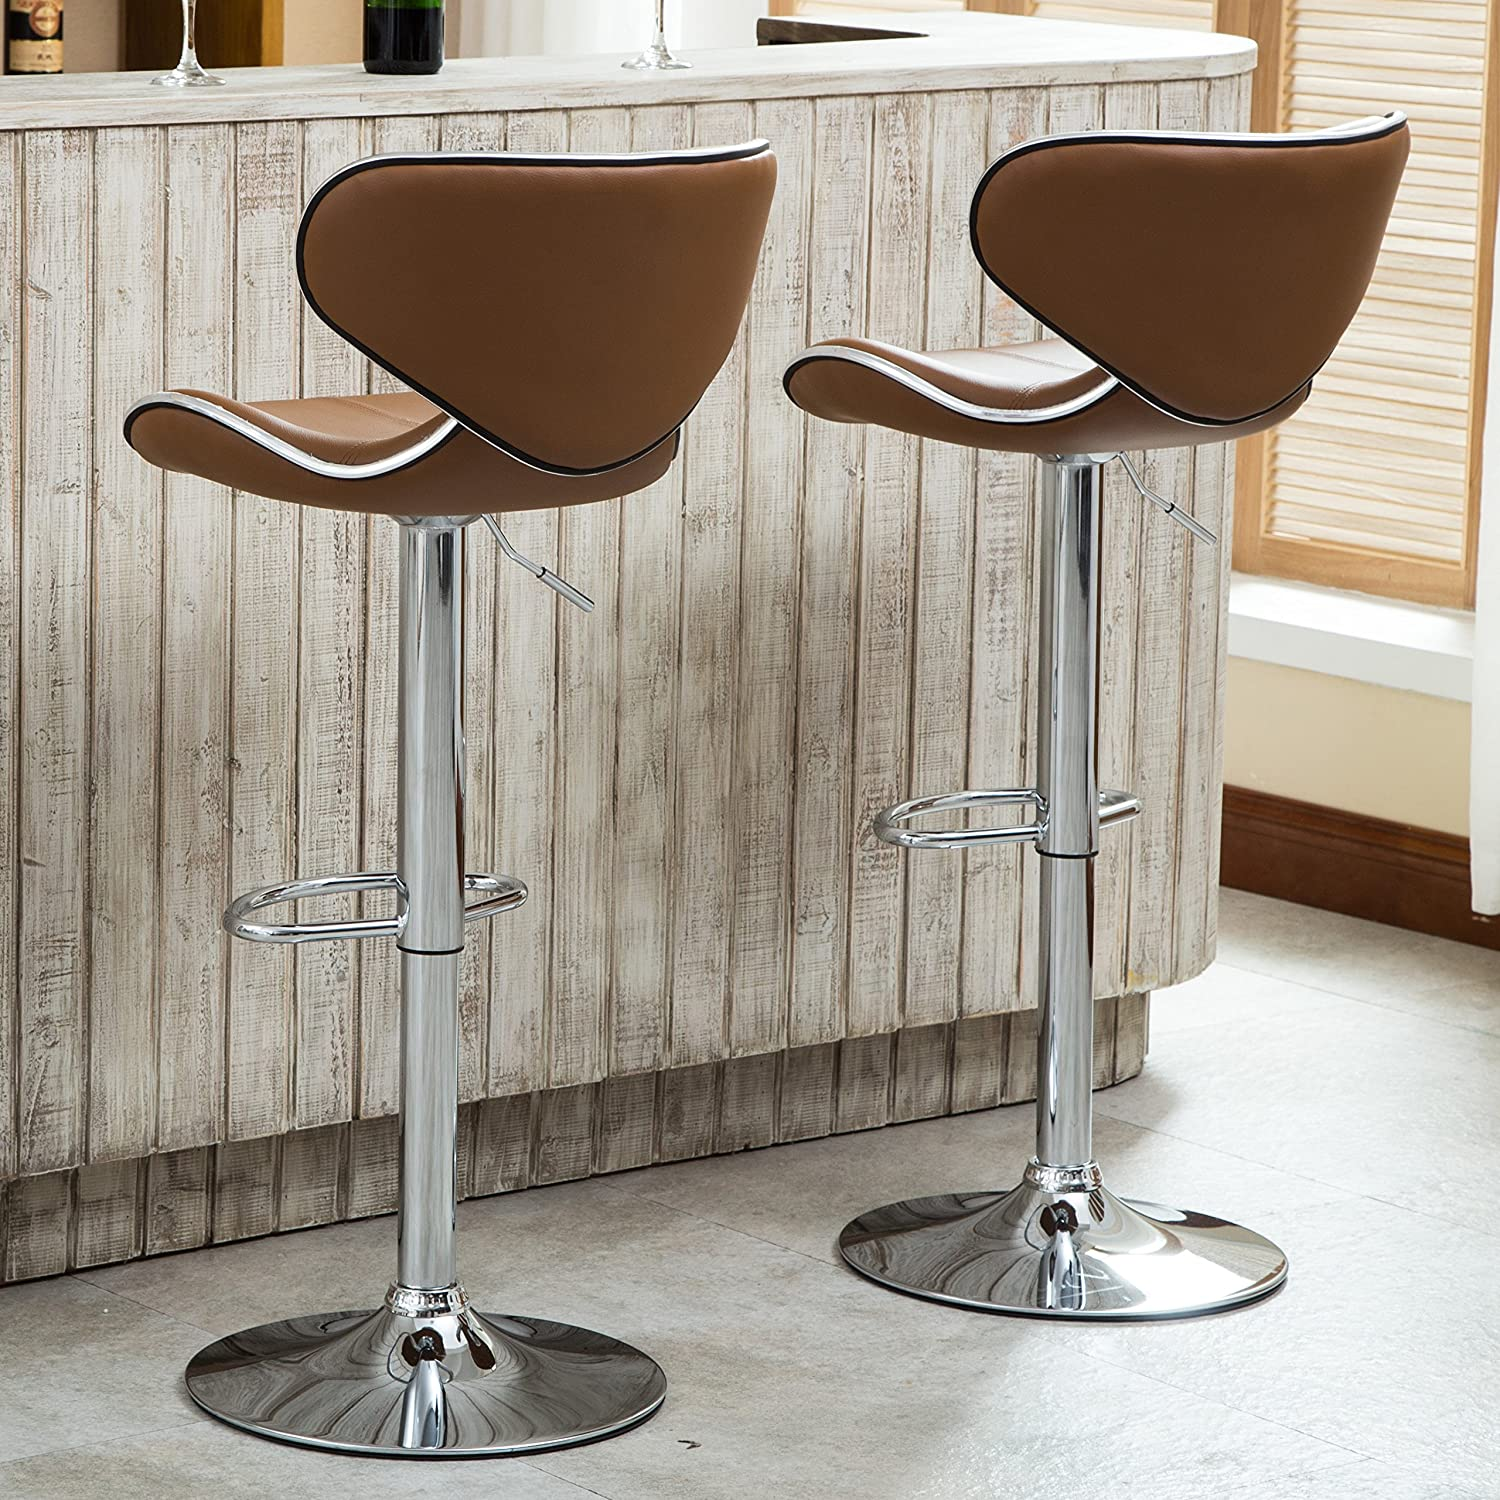 Roundhill Furniture PC138CL Masaccio Cushioned Leatherette Upholstery Airlift Adjustable Swivel Barstool with Chrome Base, Set of 2, Caramel